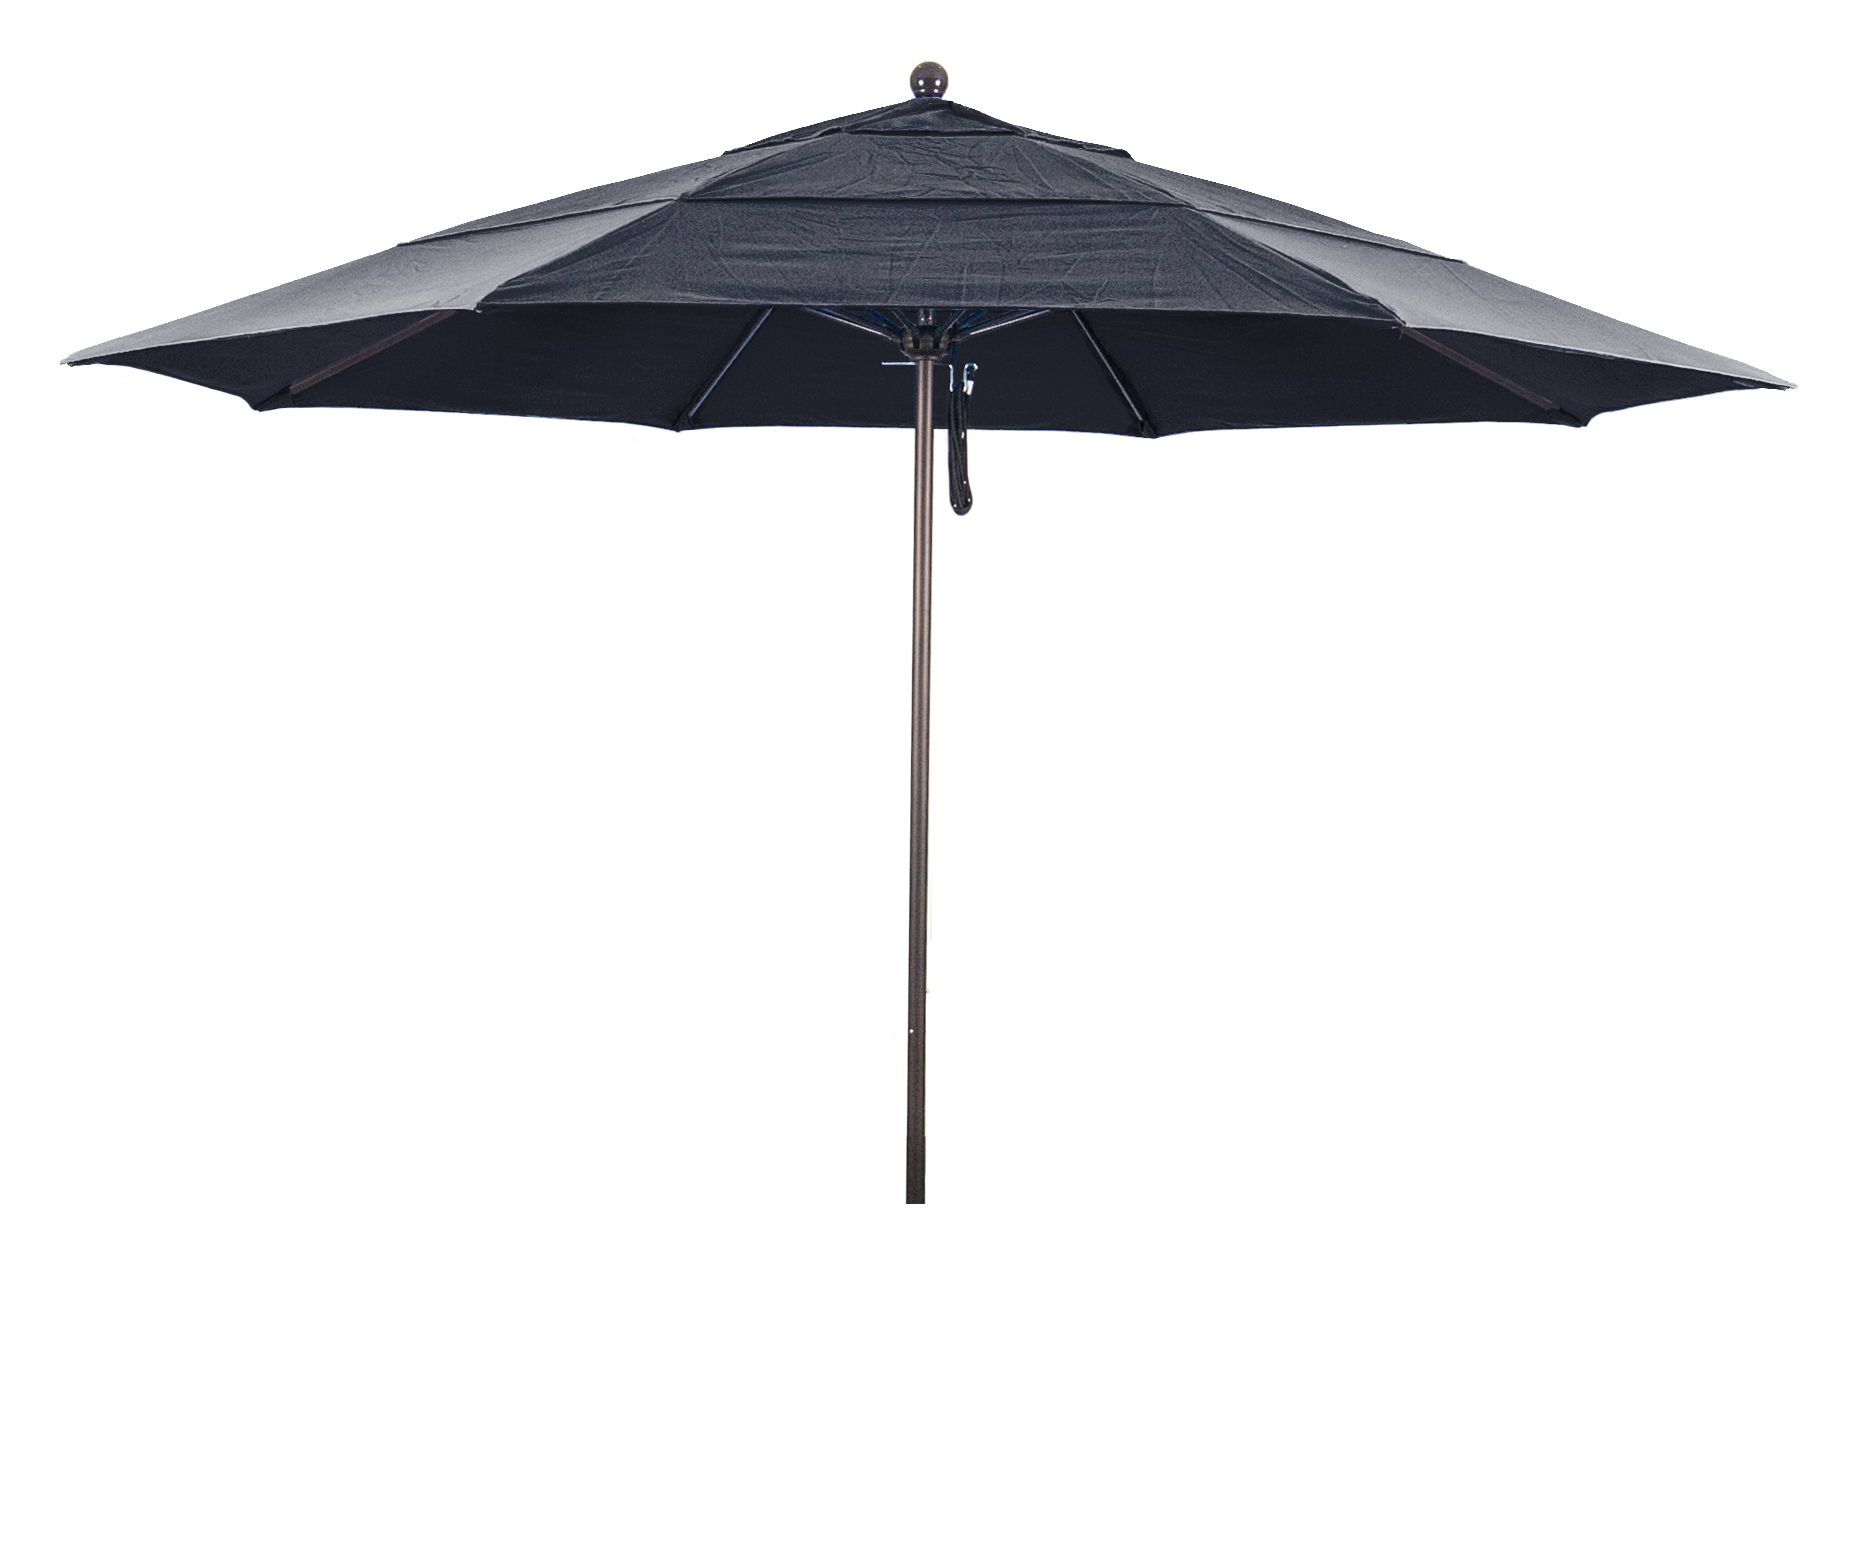 1139 Venture Series Patio Umbrella With Matted White